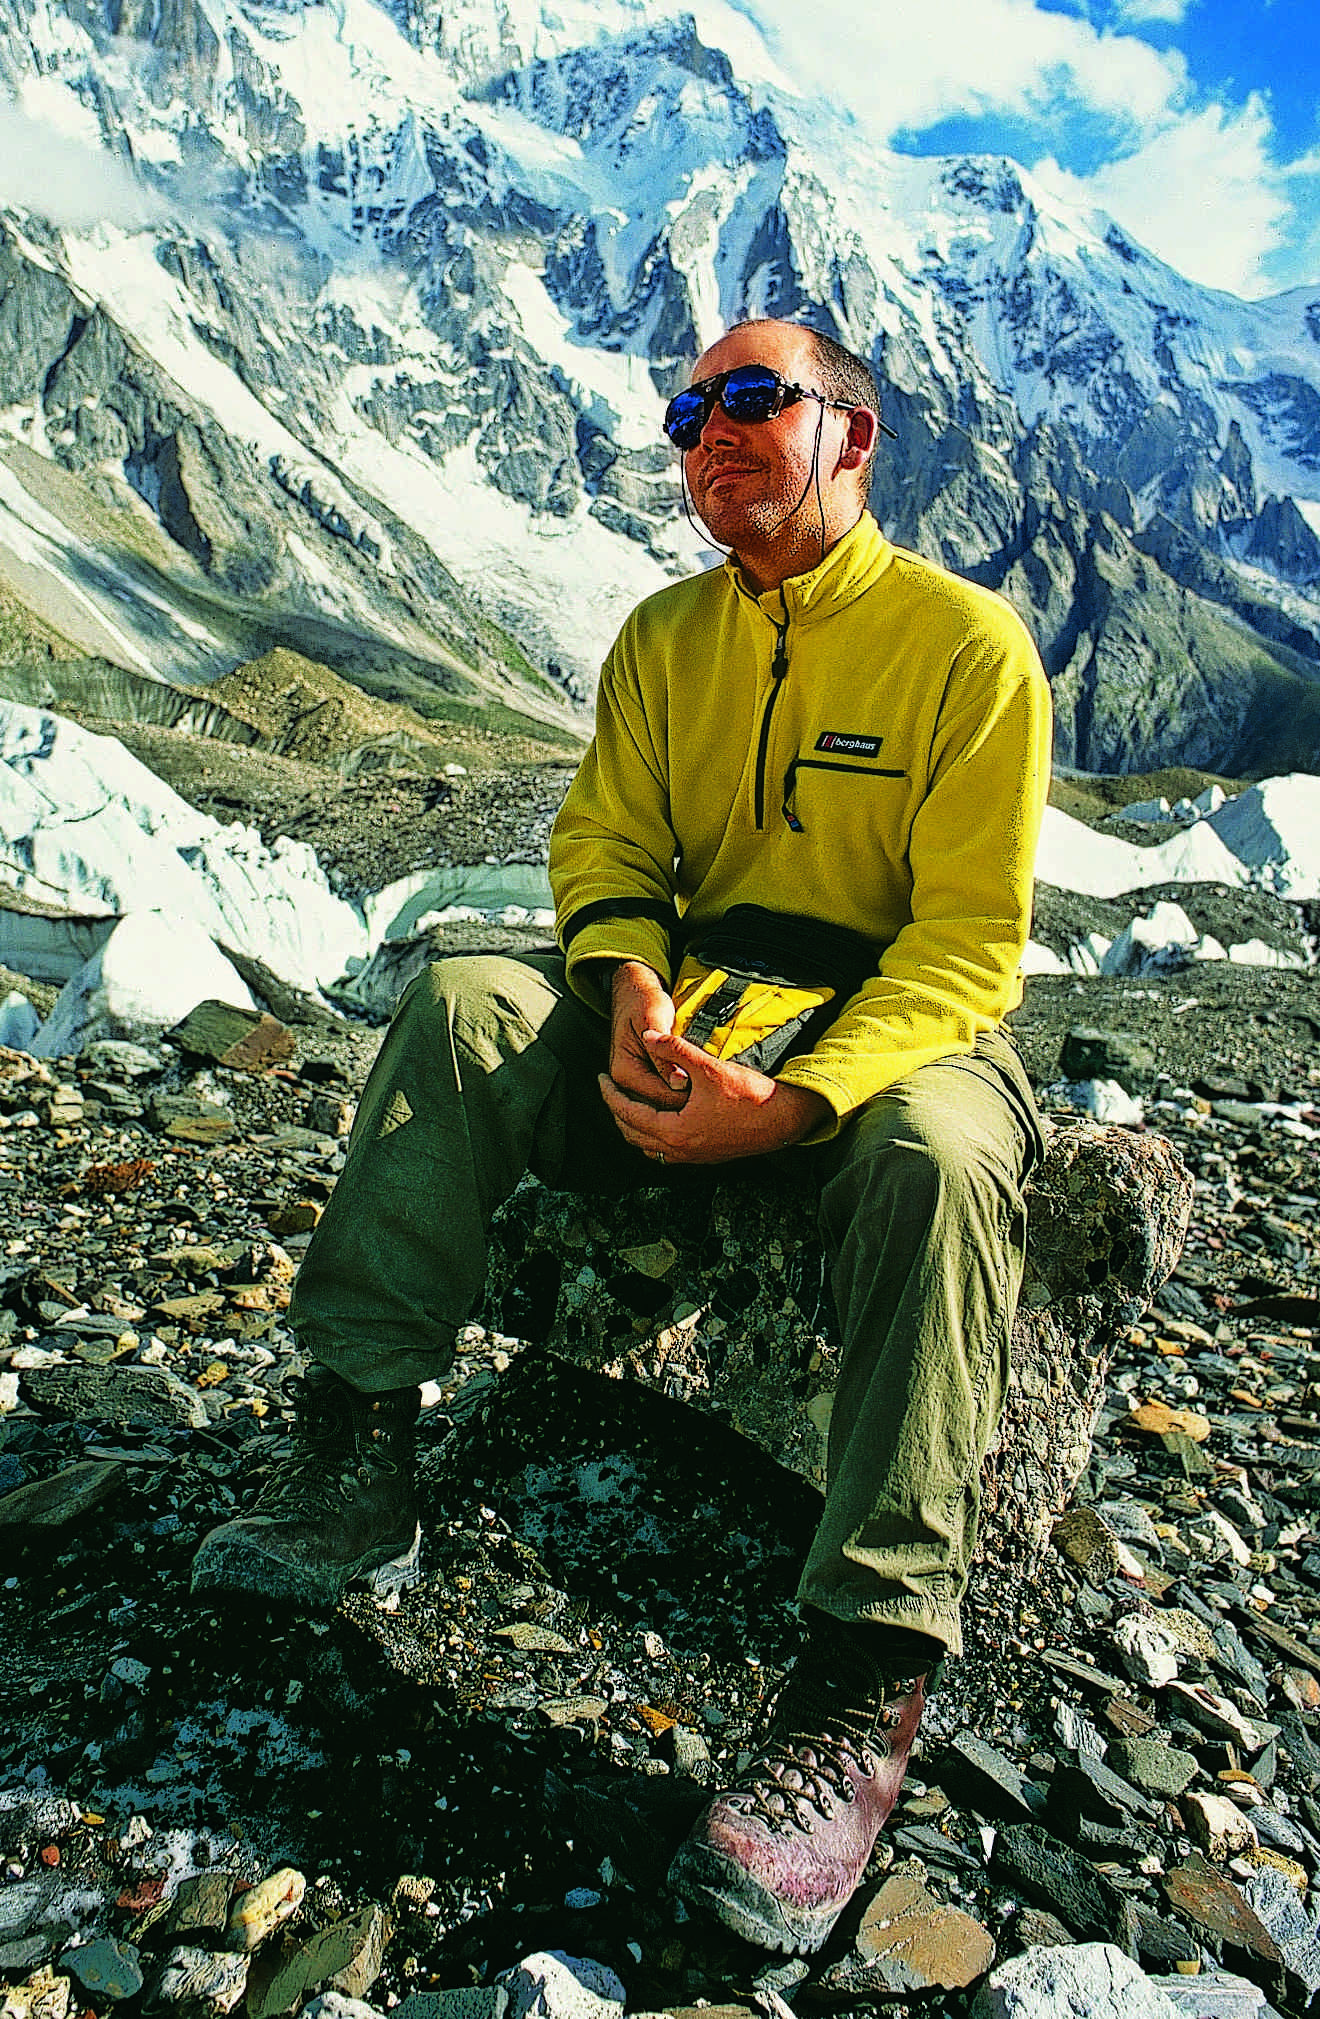 The author of the Ghosts of K2: the Epic Saga of the First Ascent, Mick Conefrey in the Himalayas